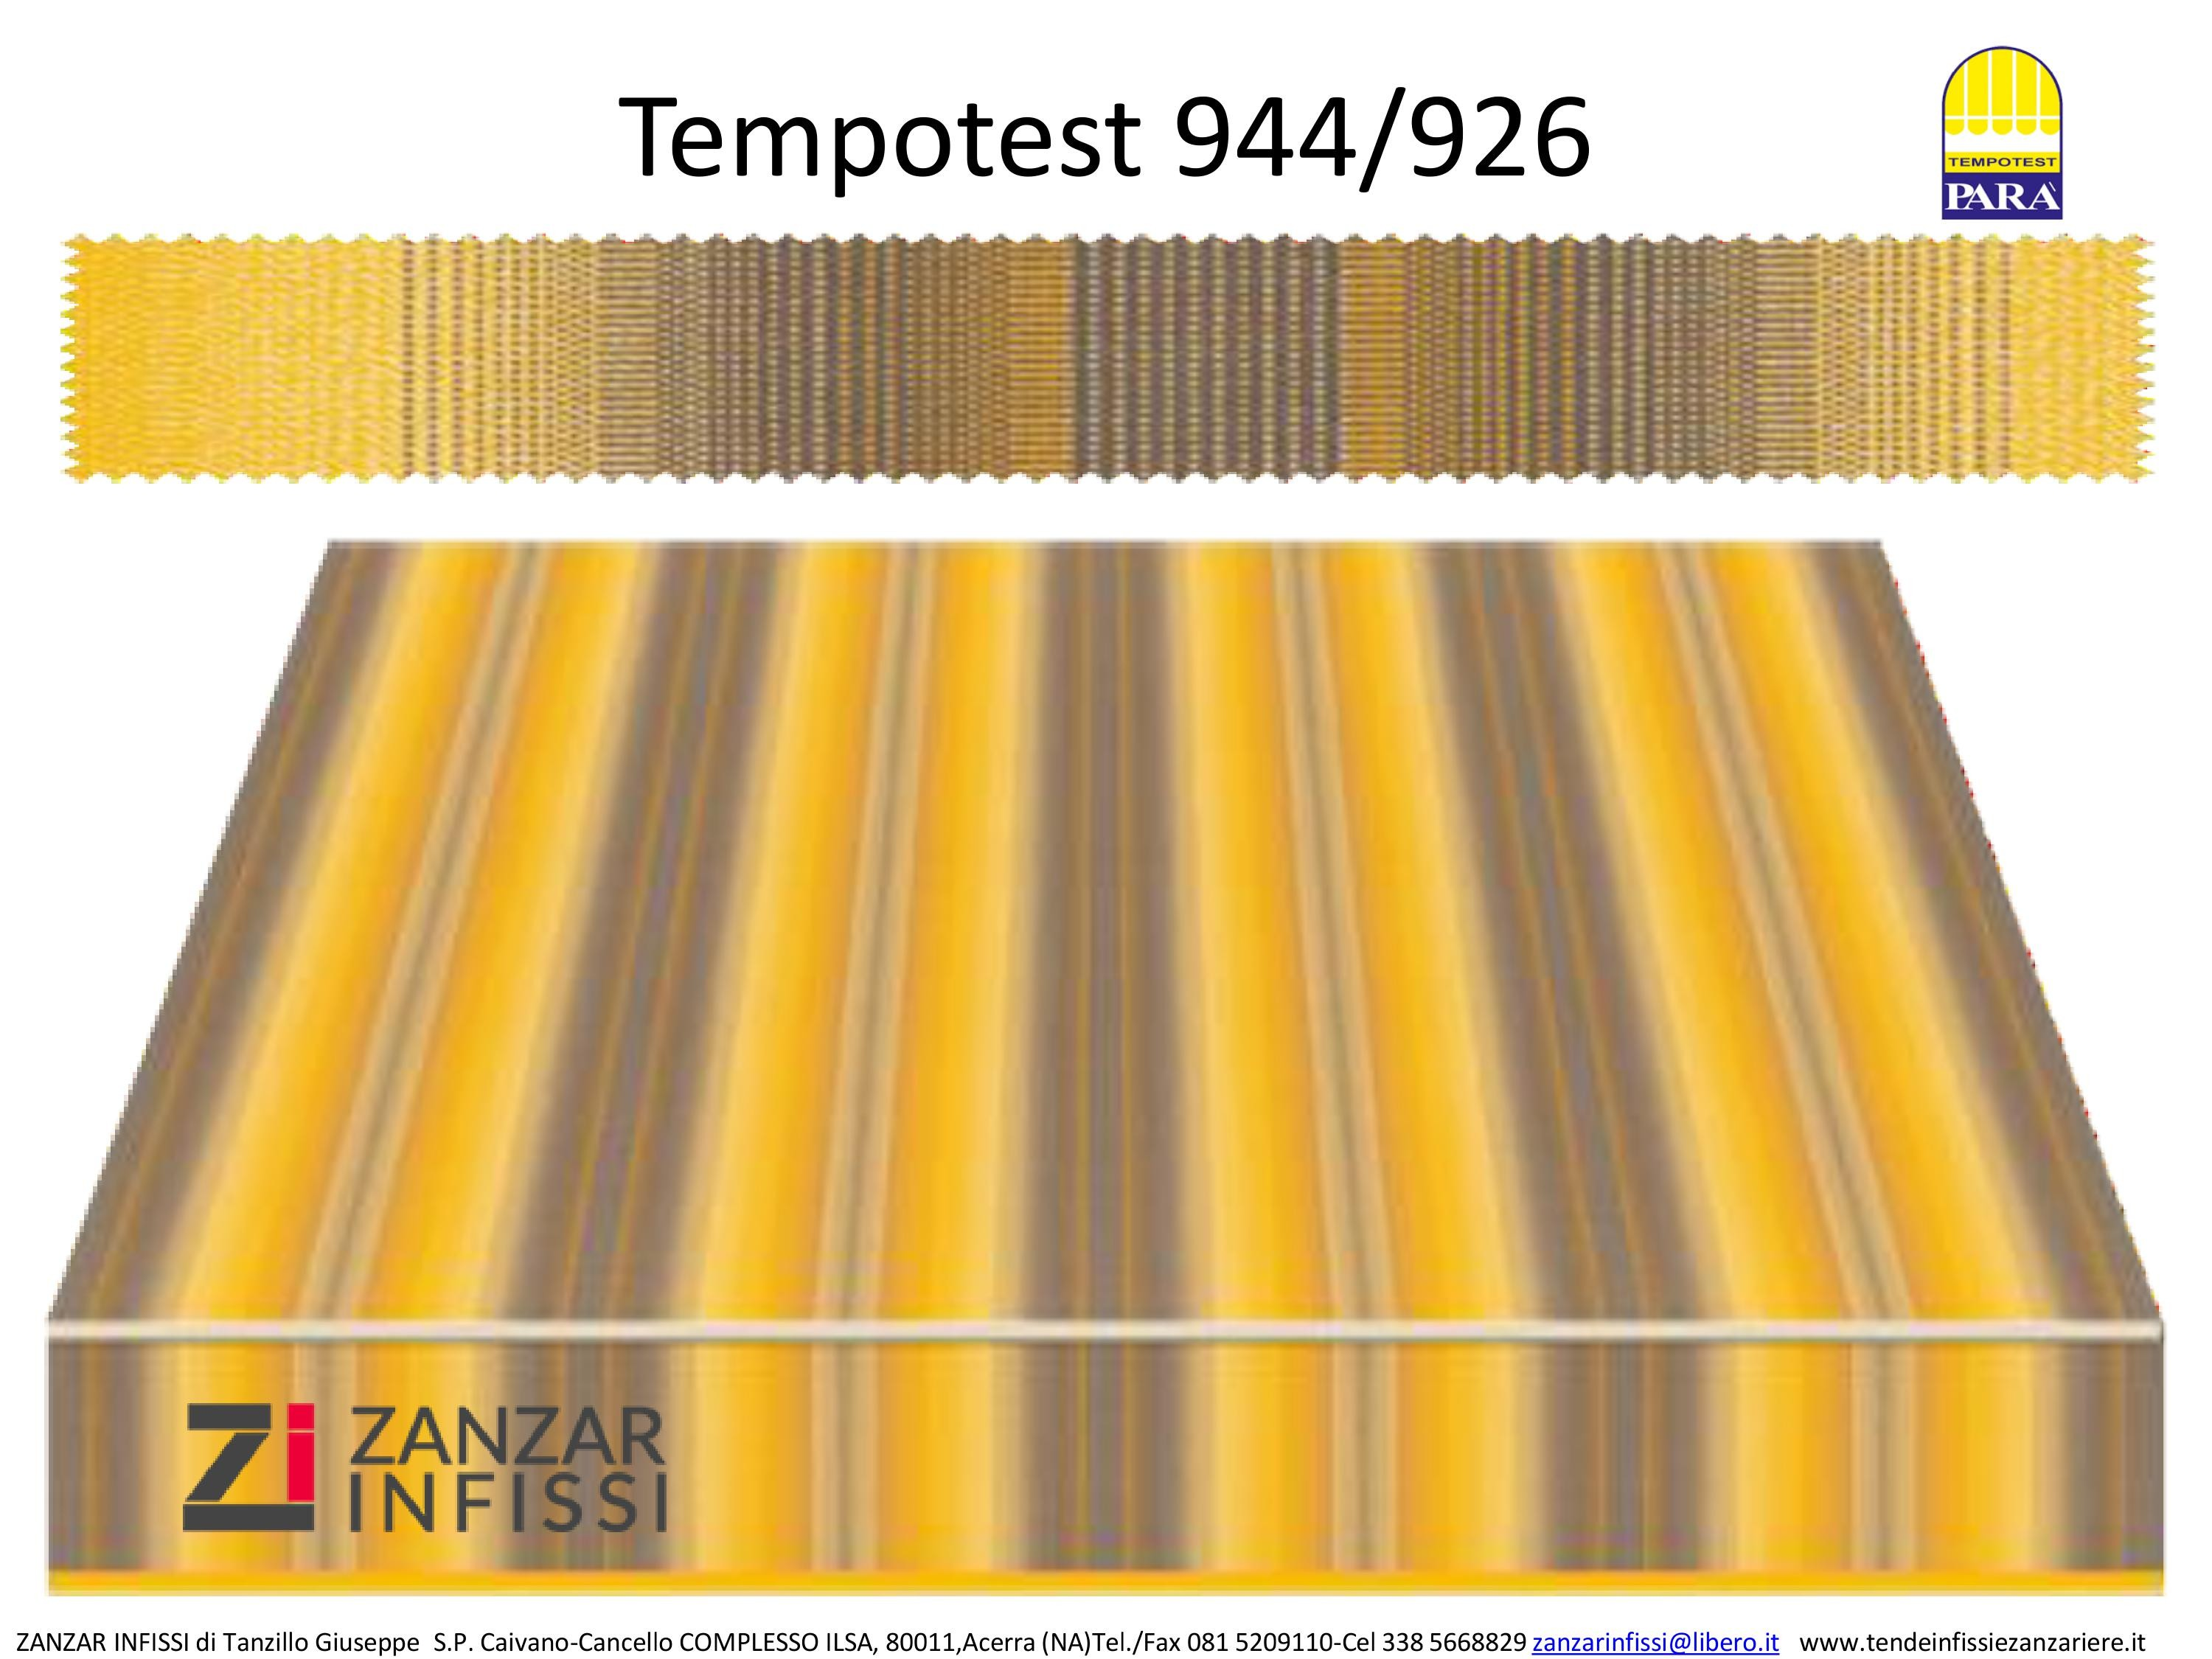 Tempotest 944/926